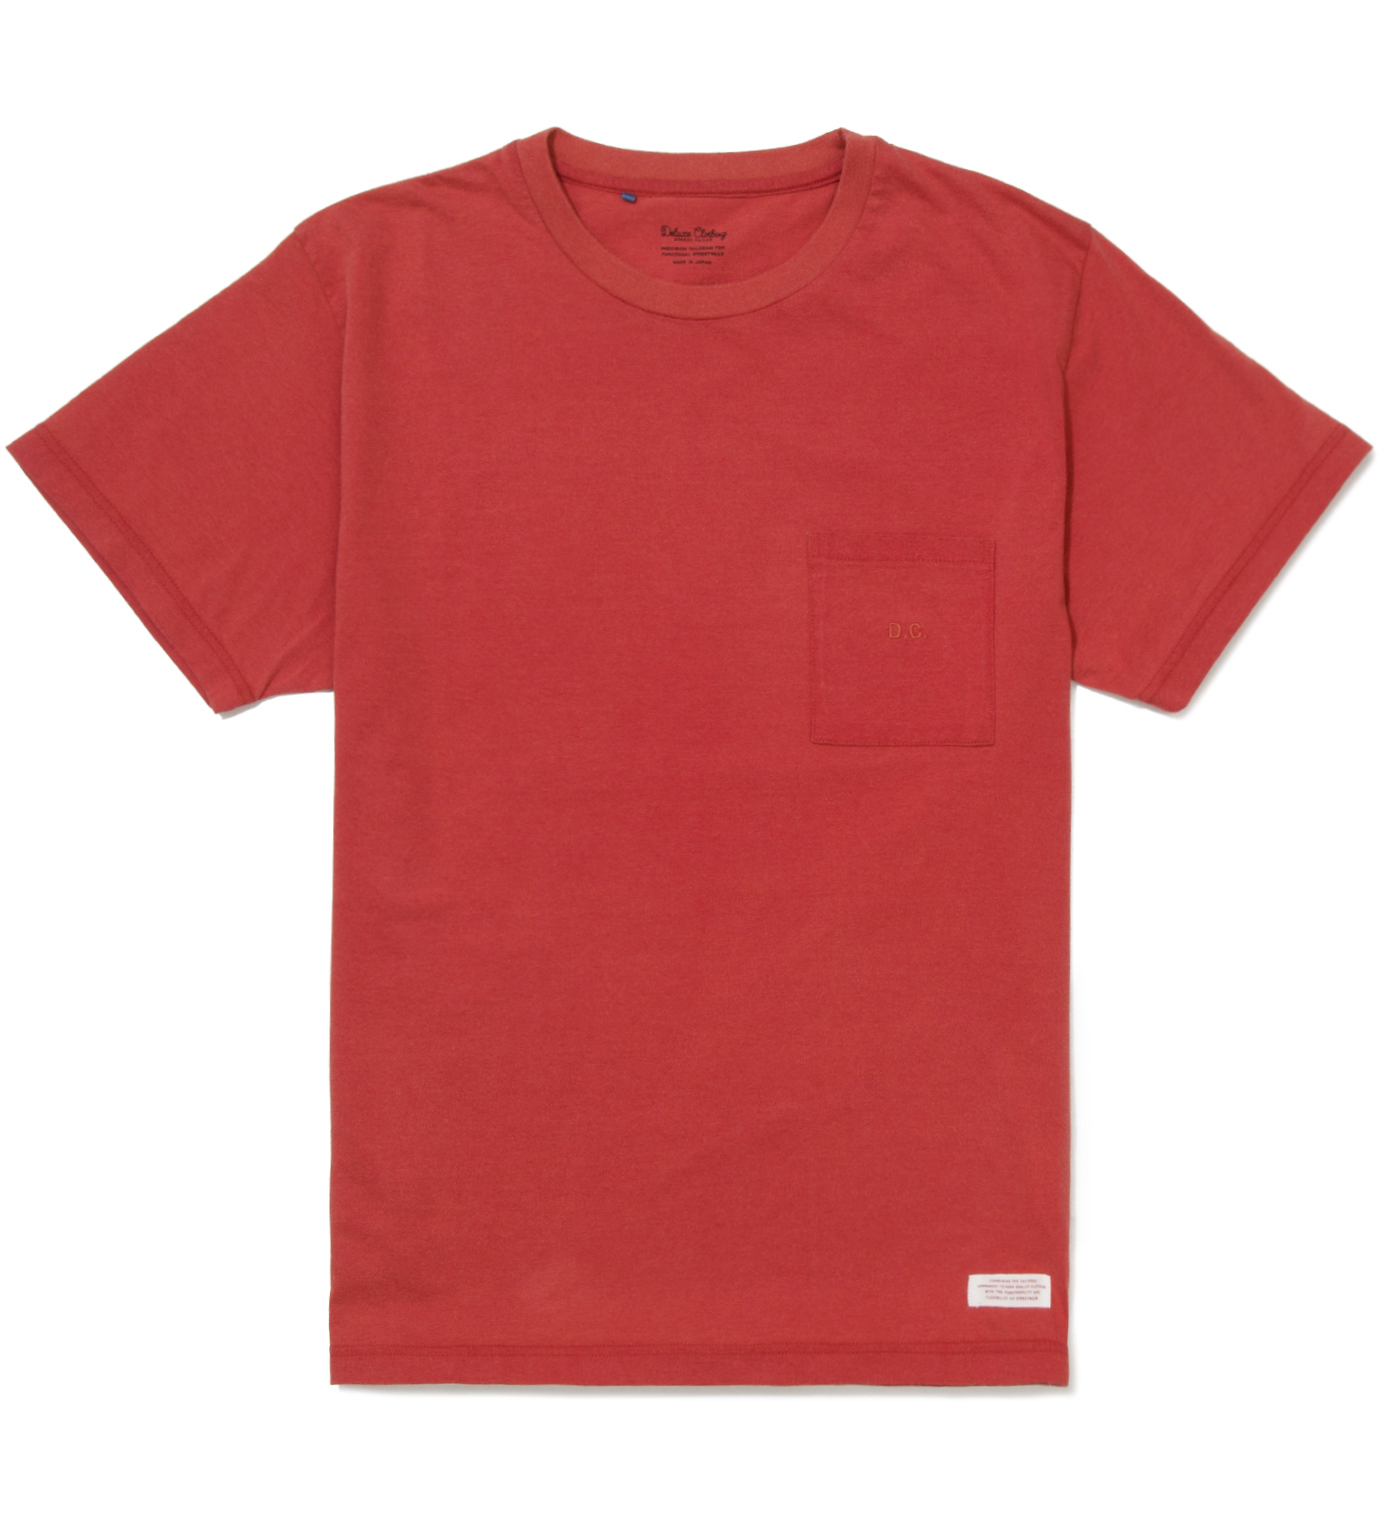 DELUXE Red Pina Colada T-Shirt